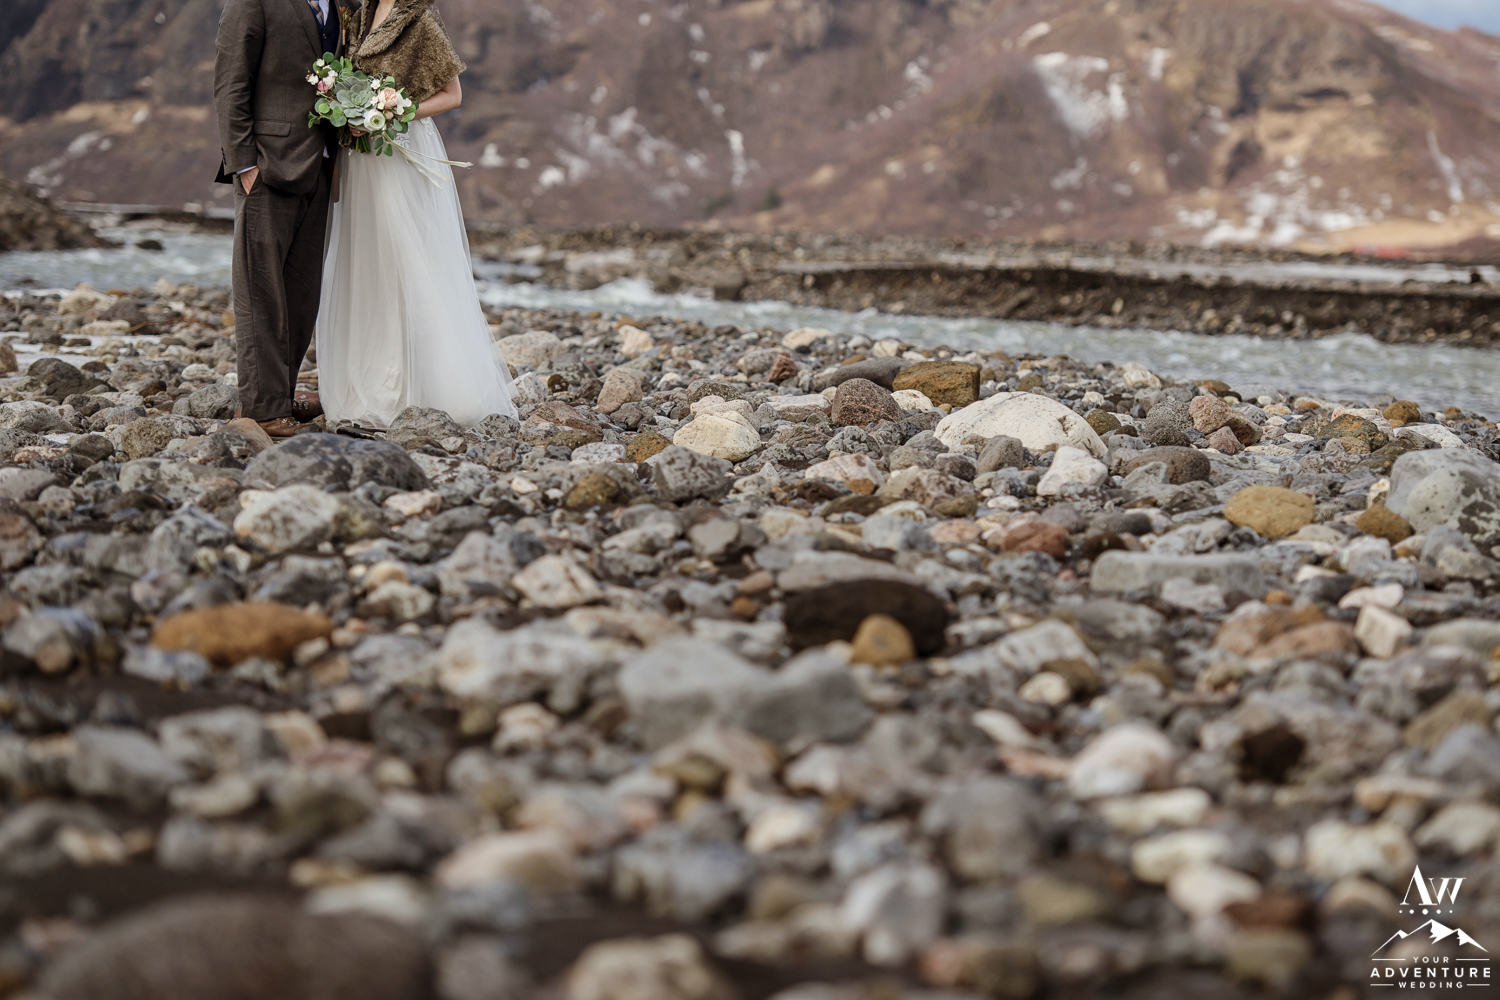 Iceland Elopement Details during adventure wedding